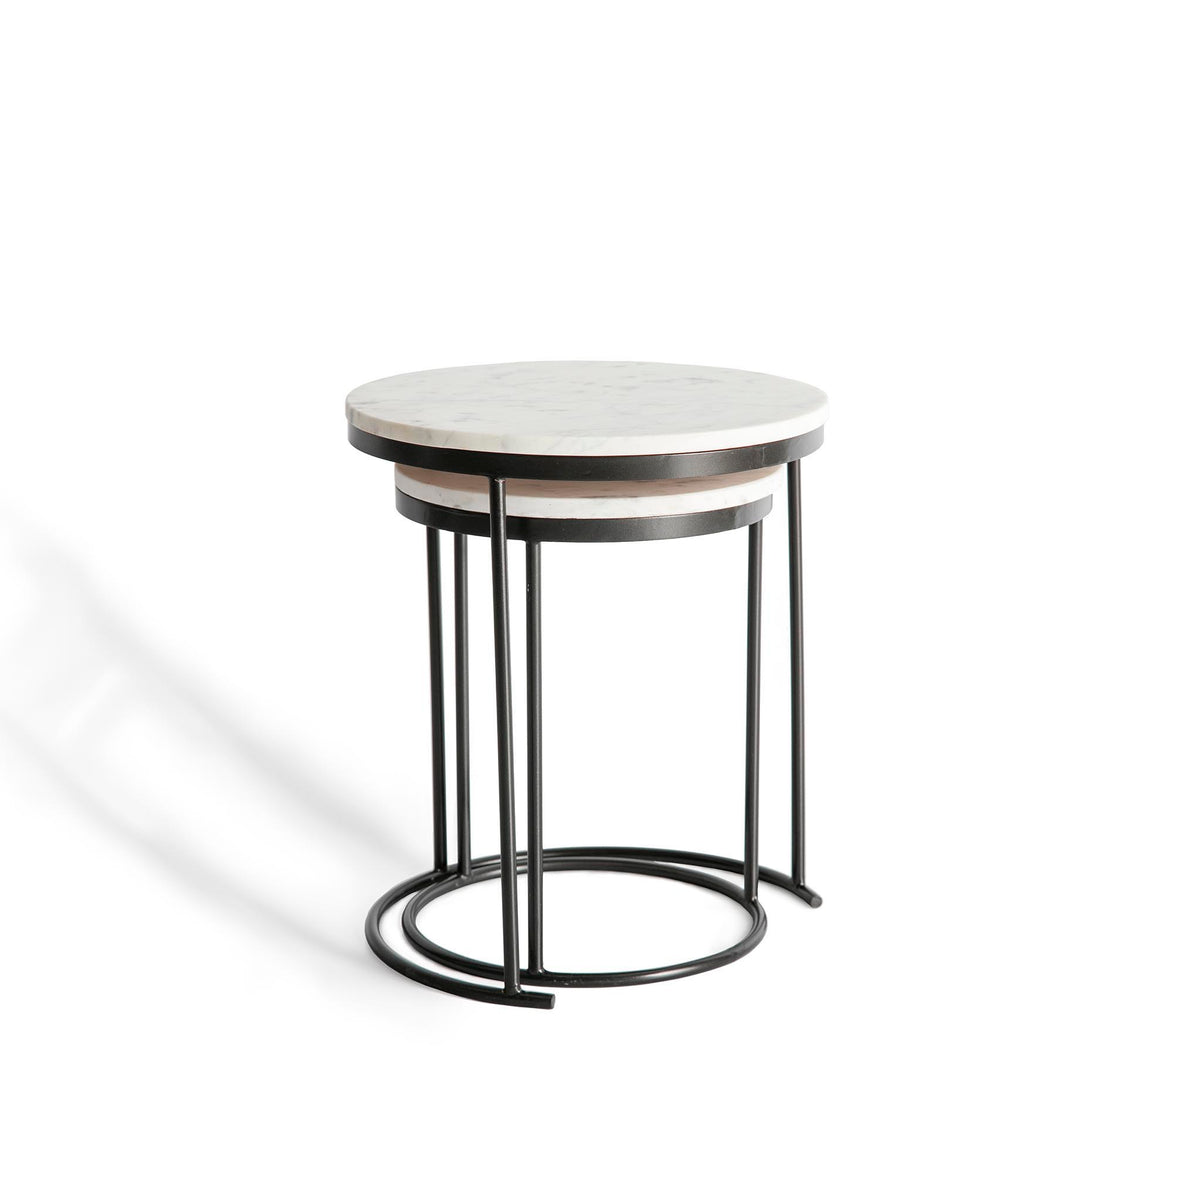 Kandla White Marble Round Nest of Tables with Grey Base by Roseland Furniture